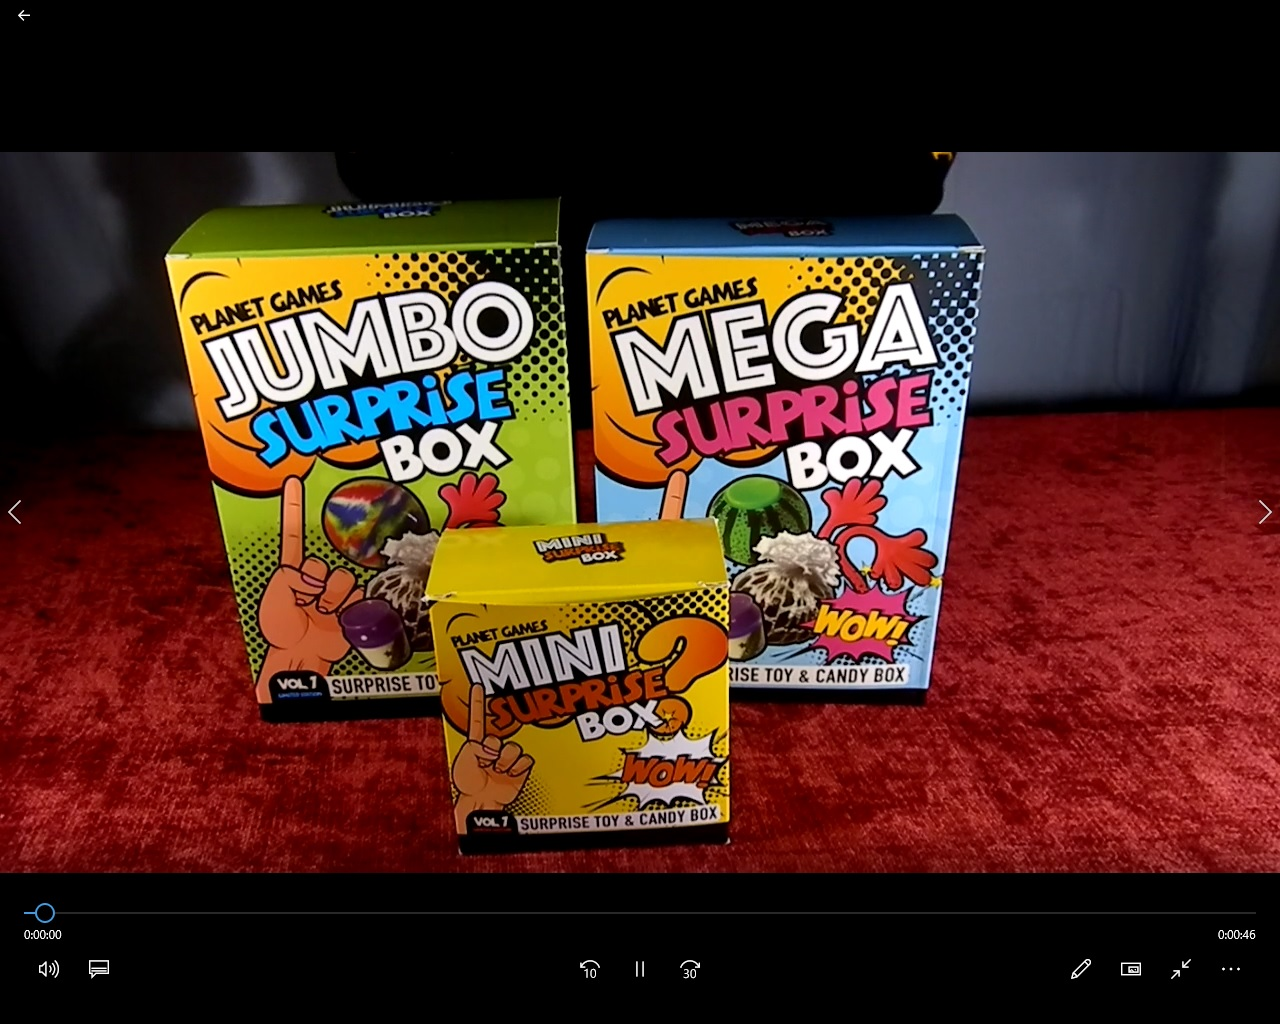 VIDEO: Meet our 3 incredible surprise mystery boxes!